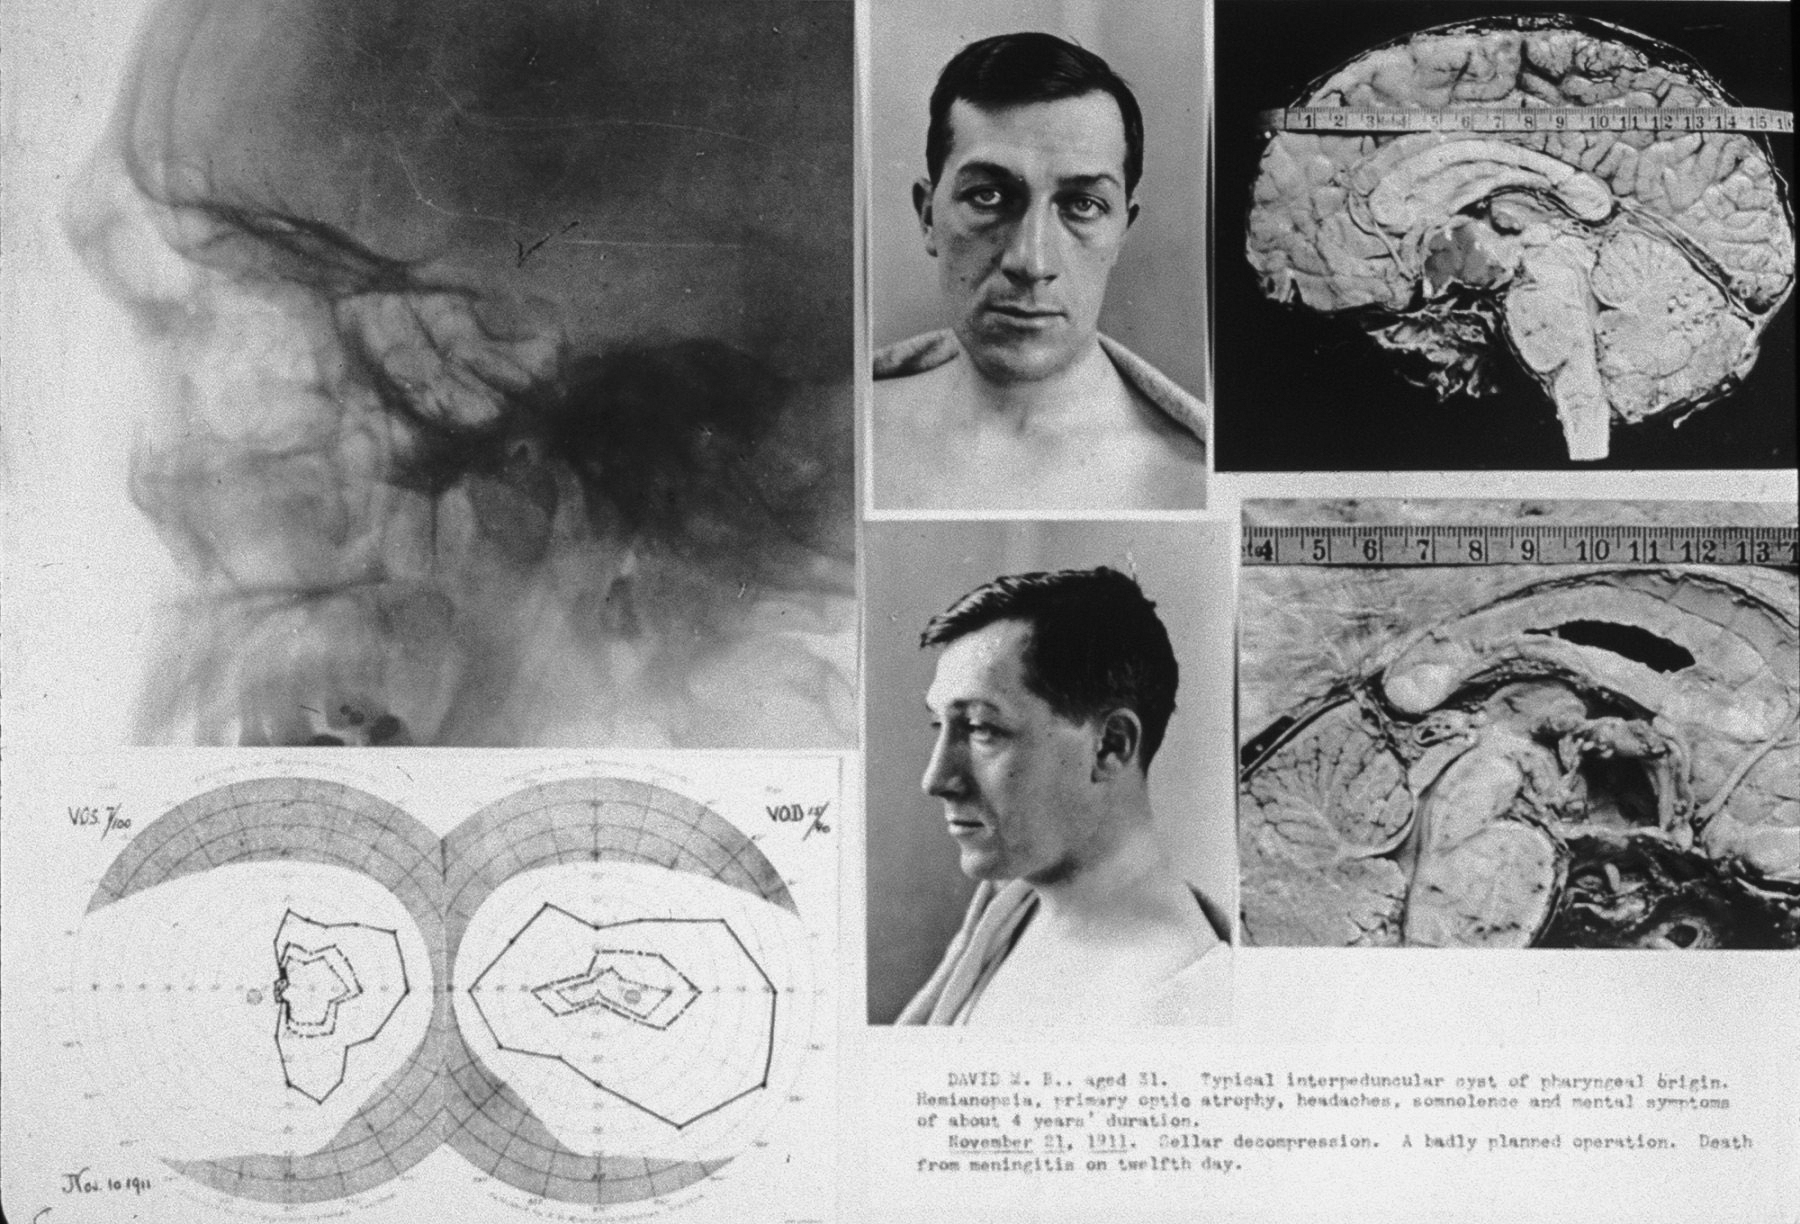 "Figure 2: Photos of a patient of Harvey Cushing who died from meningitis after surgery for a suprasellar craniopharyngioma on November 12, 1911. This image is in fact the lantern slide that Cushing used in his lectures to present his clinical research. The operative note by Cushing noted: ""Typical interpeduncular cyst of pharyngeal origin. Sellar decompression. A badly planned operation. Death from meningitis on twelfth day."" The autopsy brain specimens on the right demonstrate the extent of tumor decompression through the transsphenoidal route."